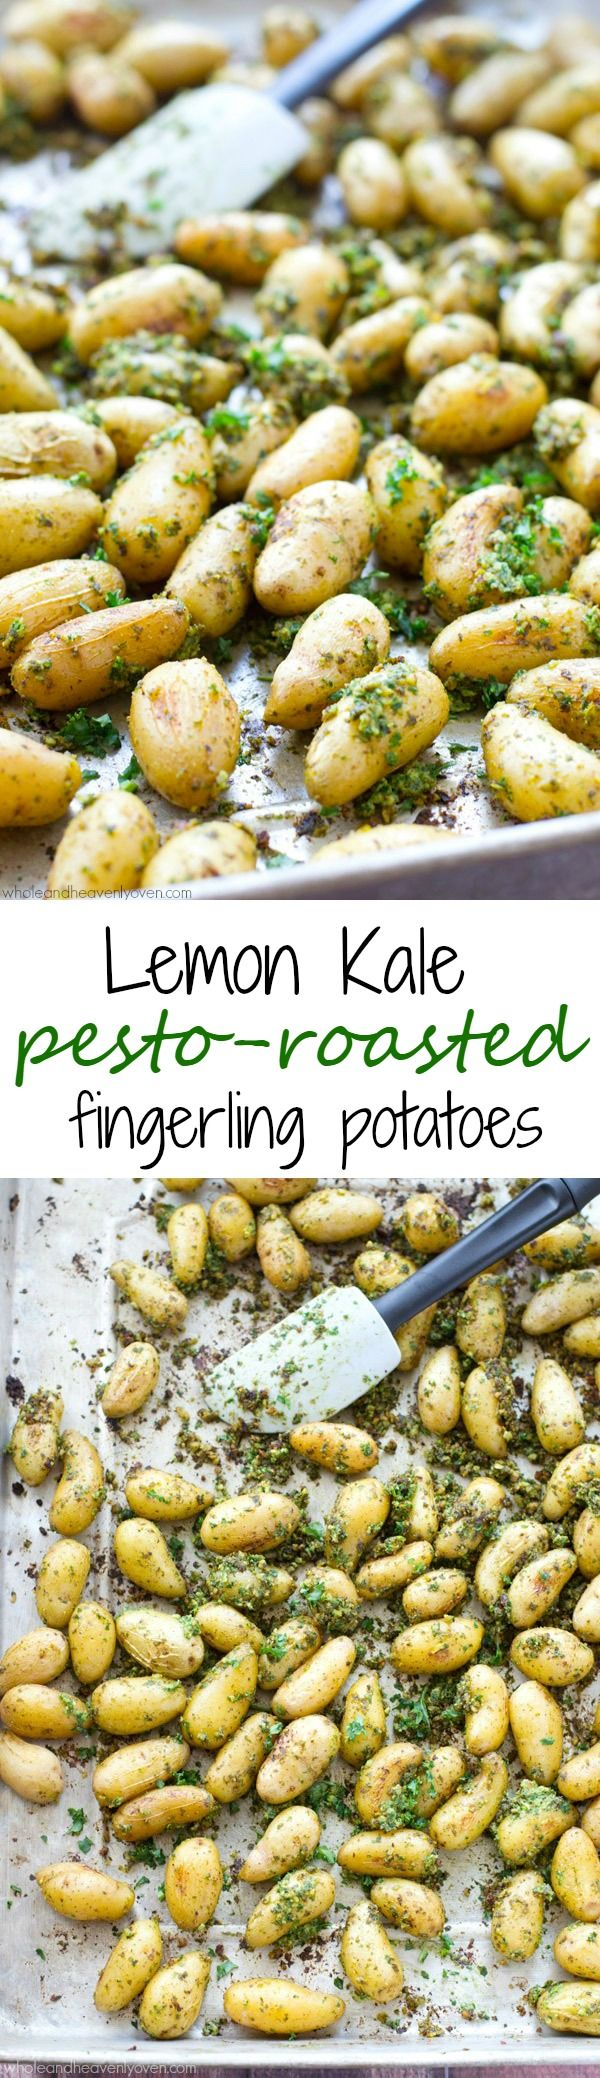 You won't believe how much flavor is packed into these pesto-roasted fingerling potatoes! They make an easy and delicious side dish for any spring dinner. @WholeHeavenly